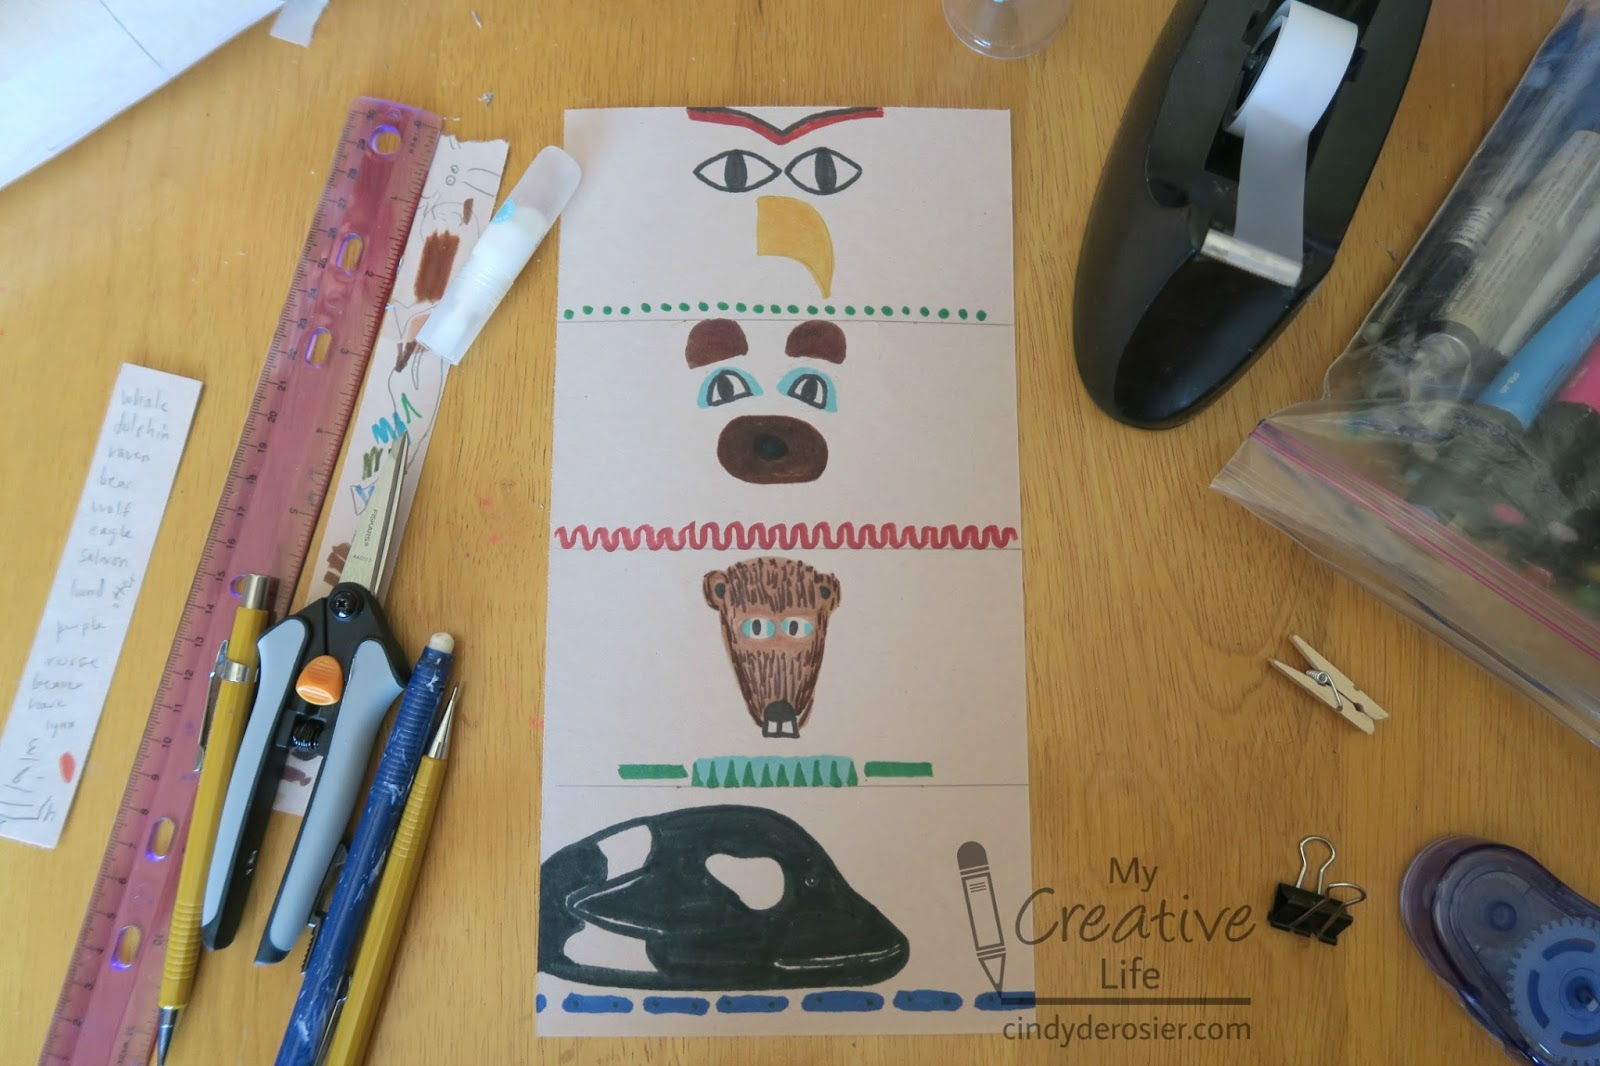 Totem poles are family histories carved from trees. Cindy Derosier My Creative Life Cardboard Tube Totem Pole Craft